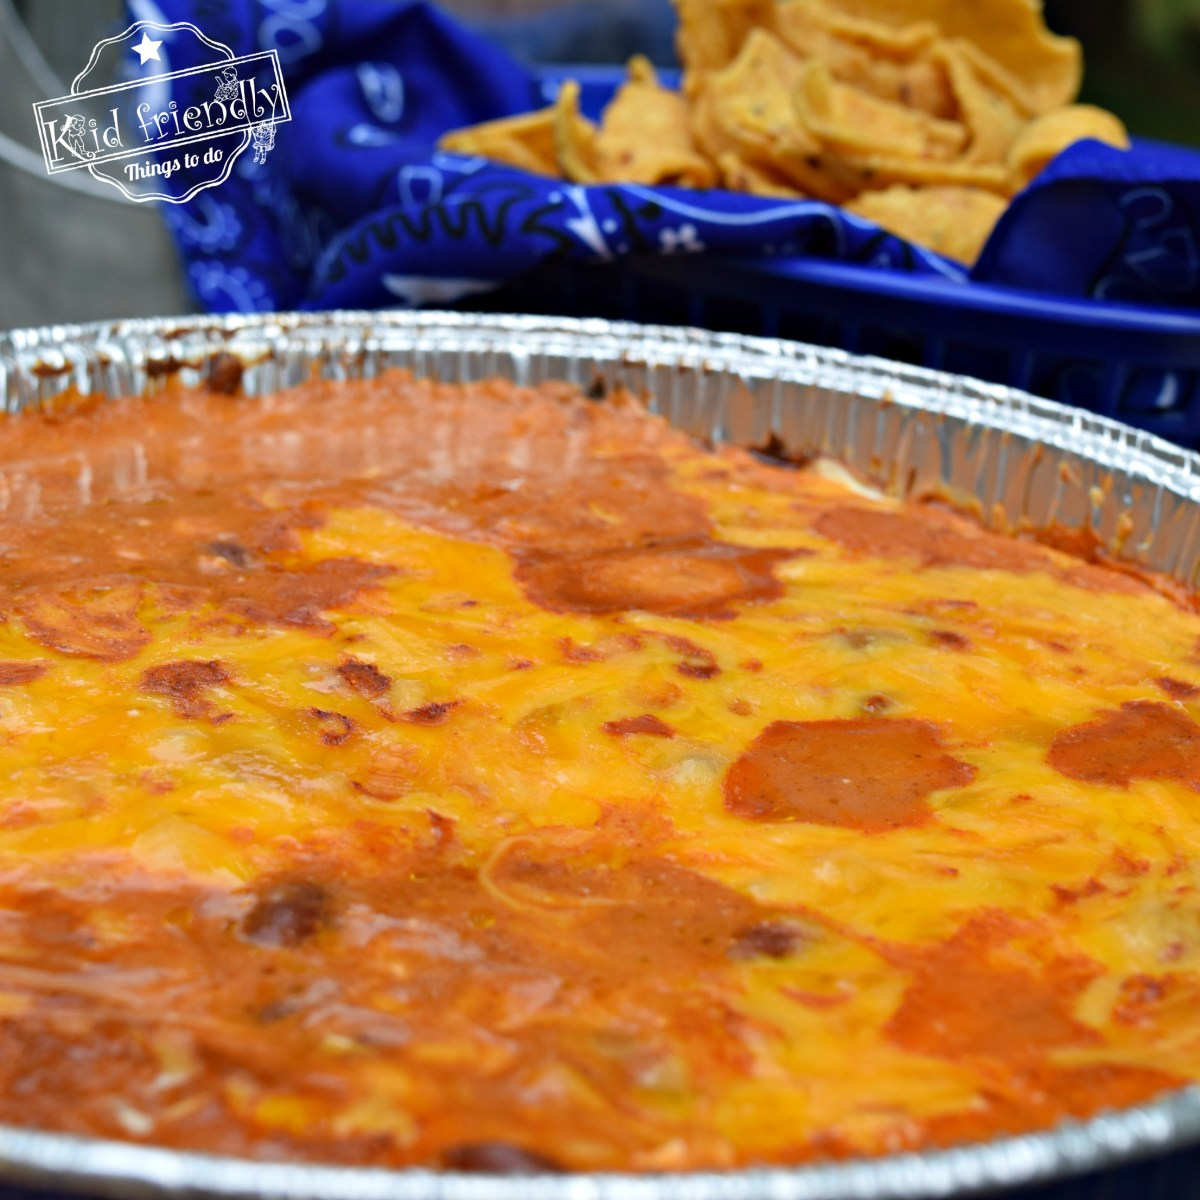 Three Ingredient Bean and Cheese Campfire or Backyard Grill Dip